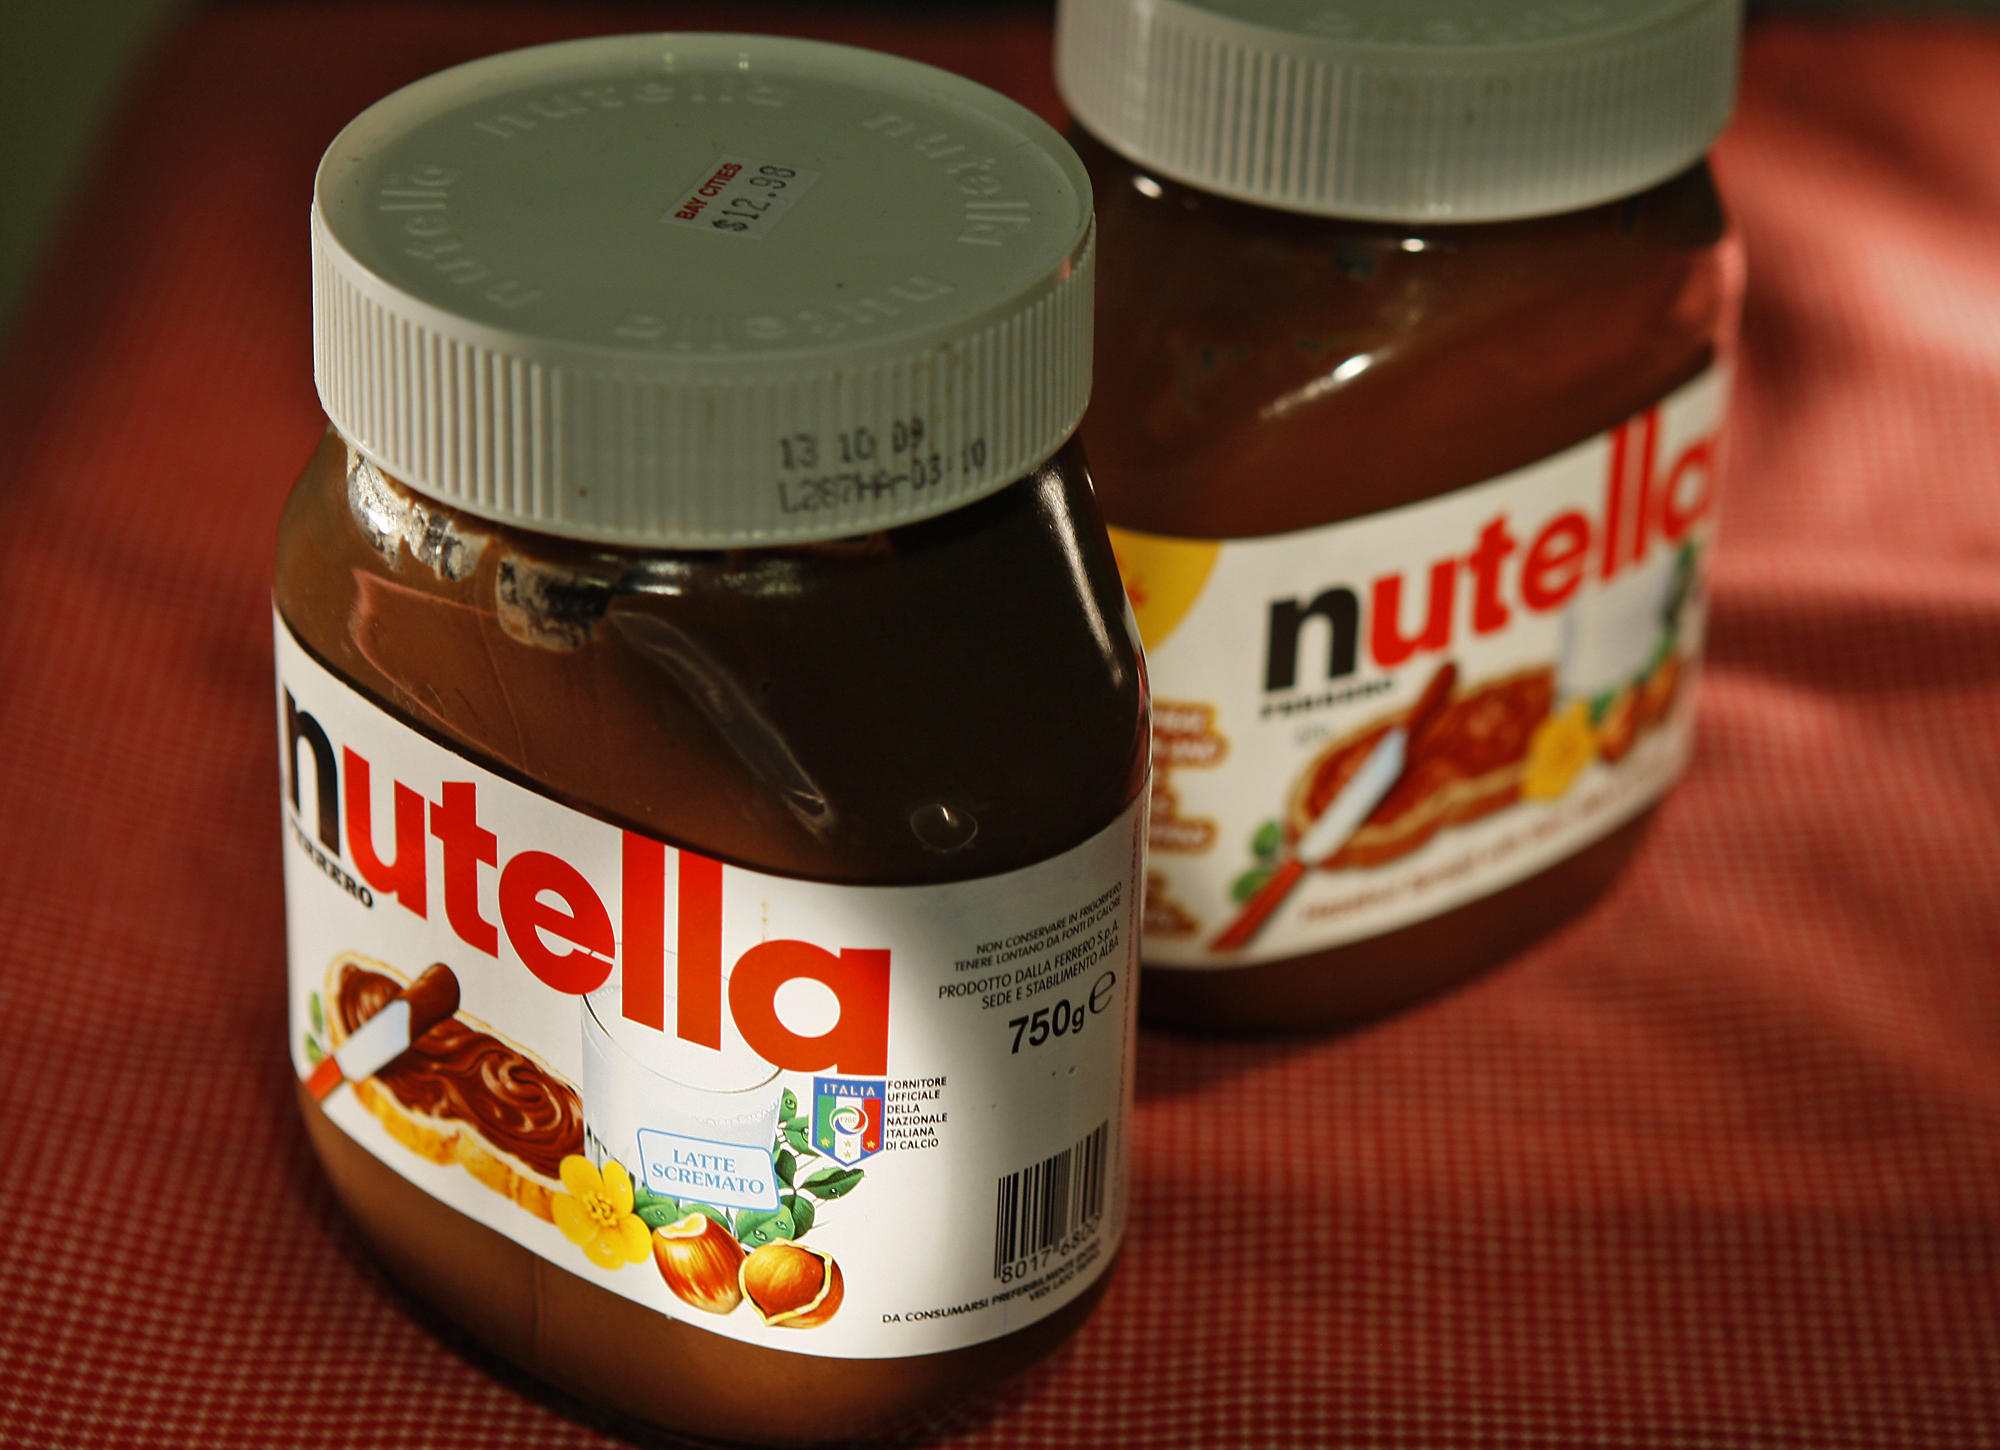 Nutella spread from Italy, left, and made for the USA, in Canada.